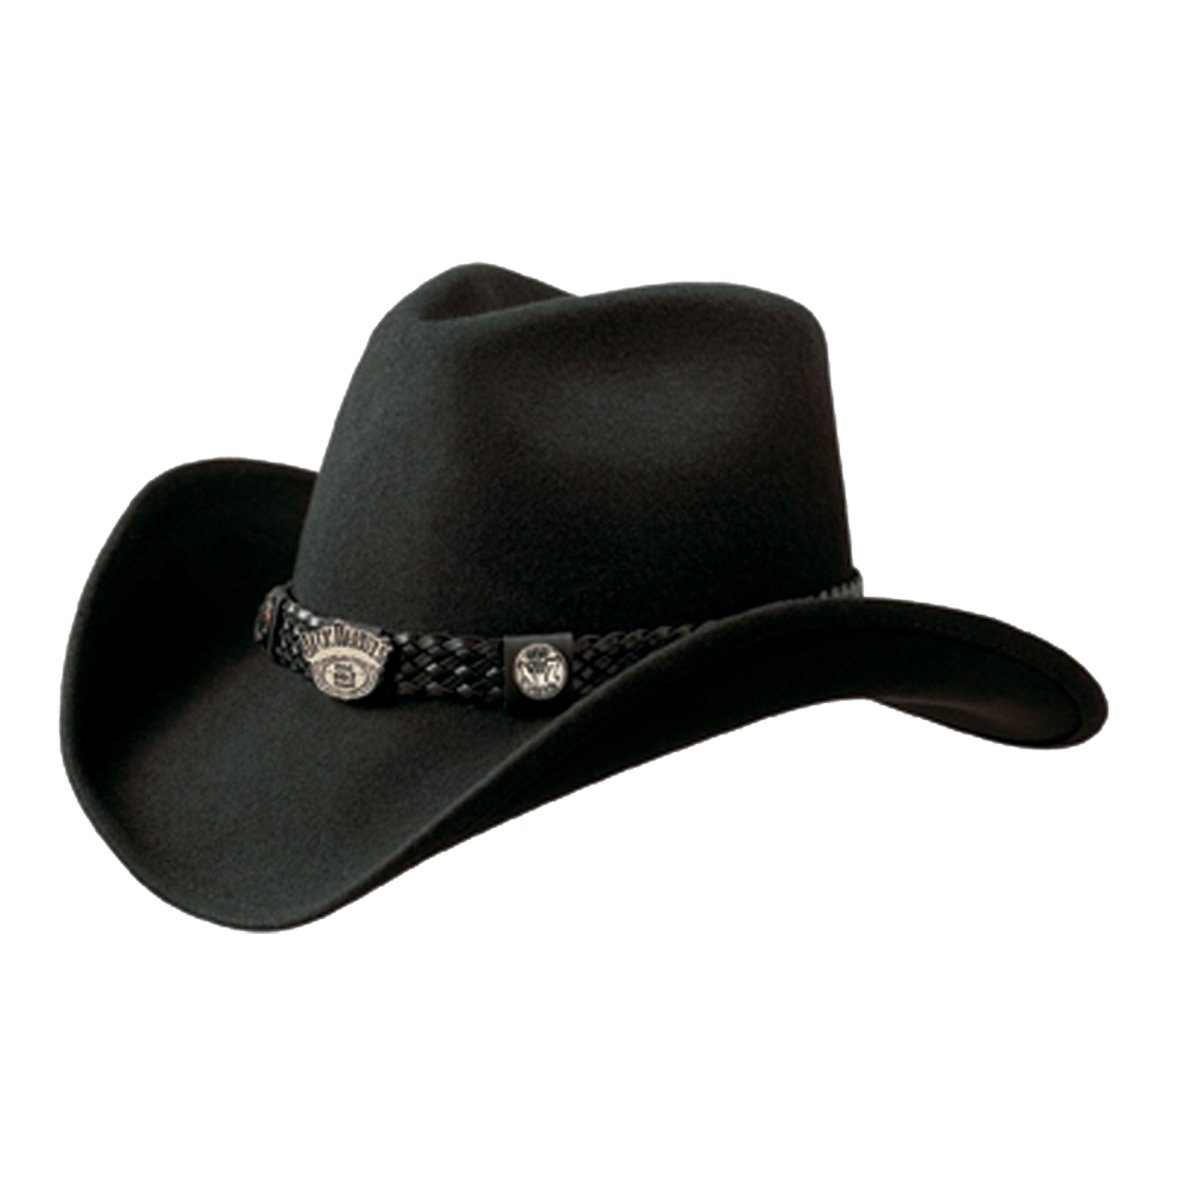 Jack Daniel's Hats Crushable Water Repellent Wool Western Cowboy Hat (Large) FM Hat JD03-E